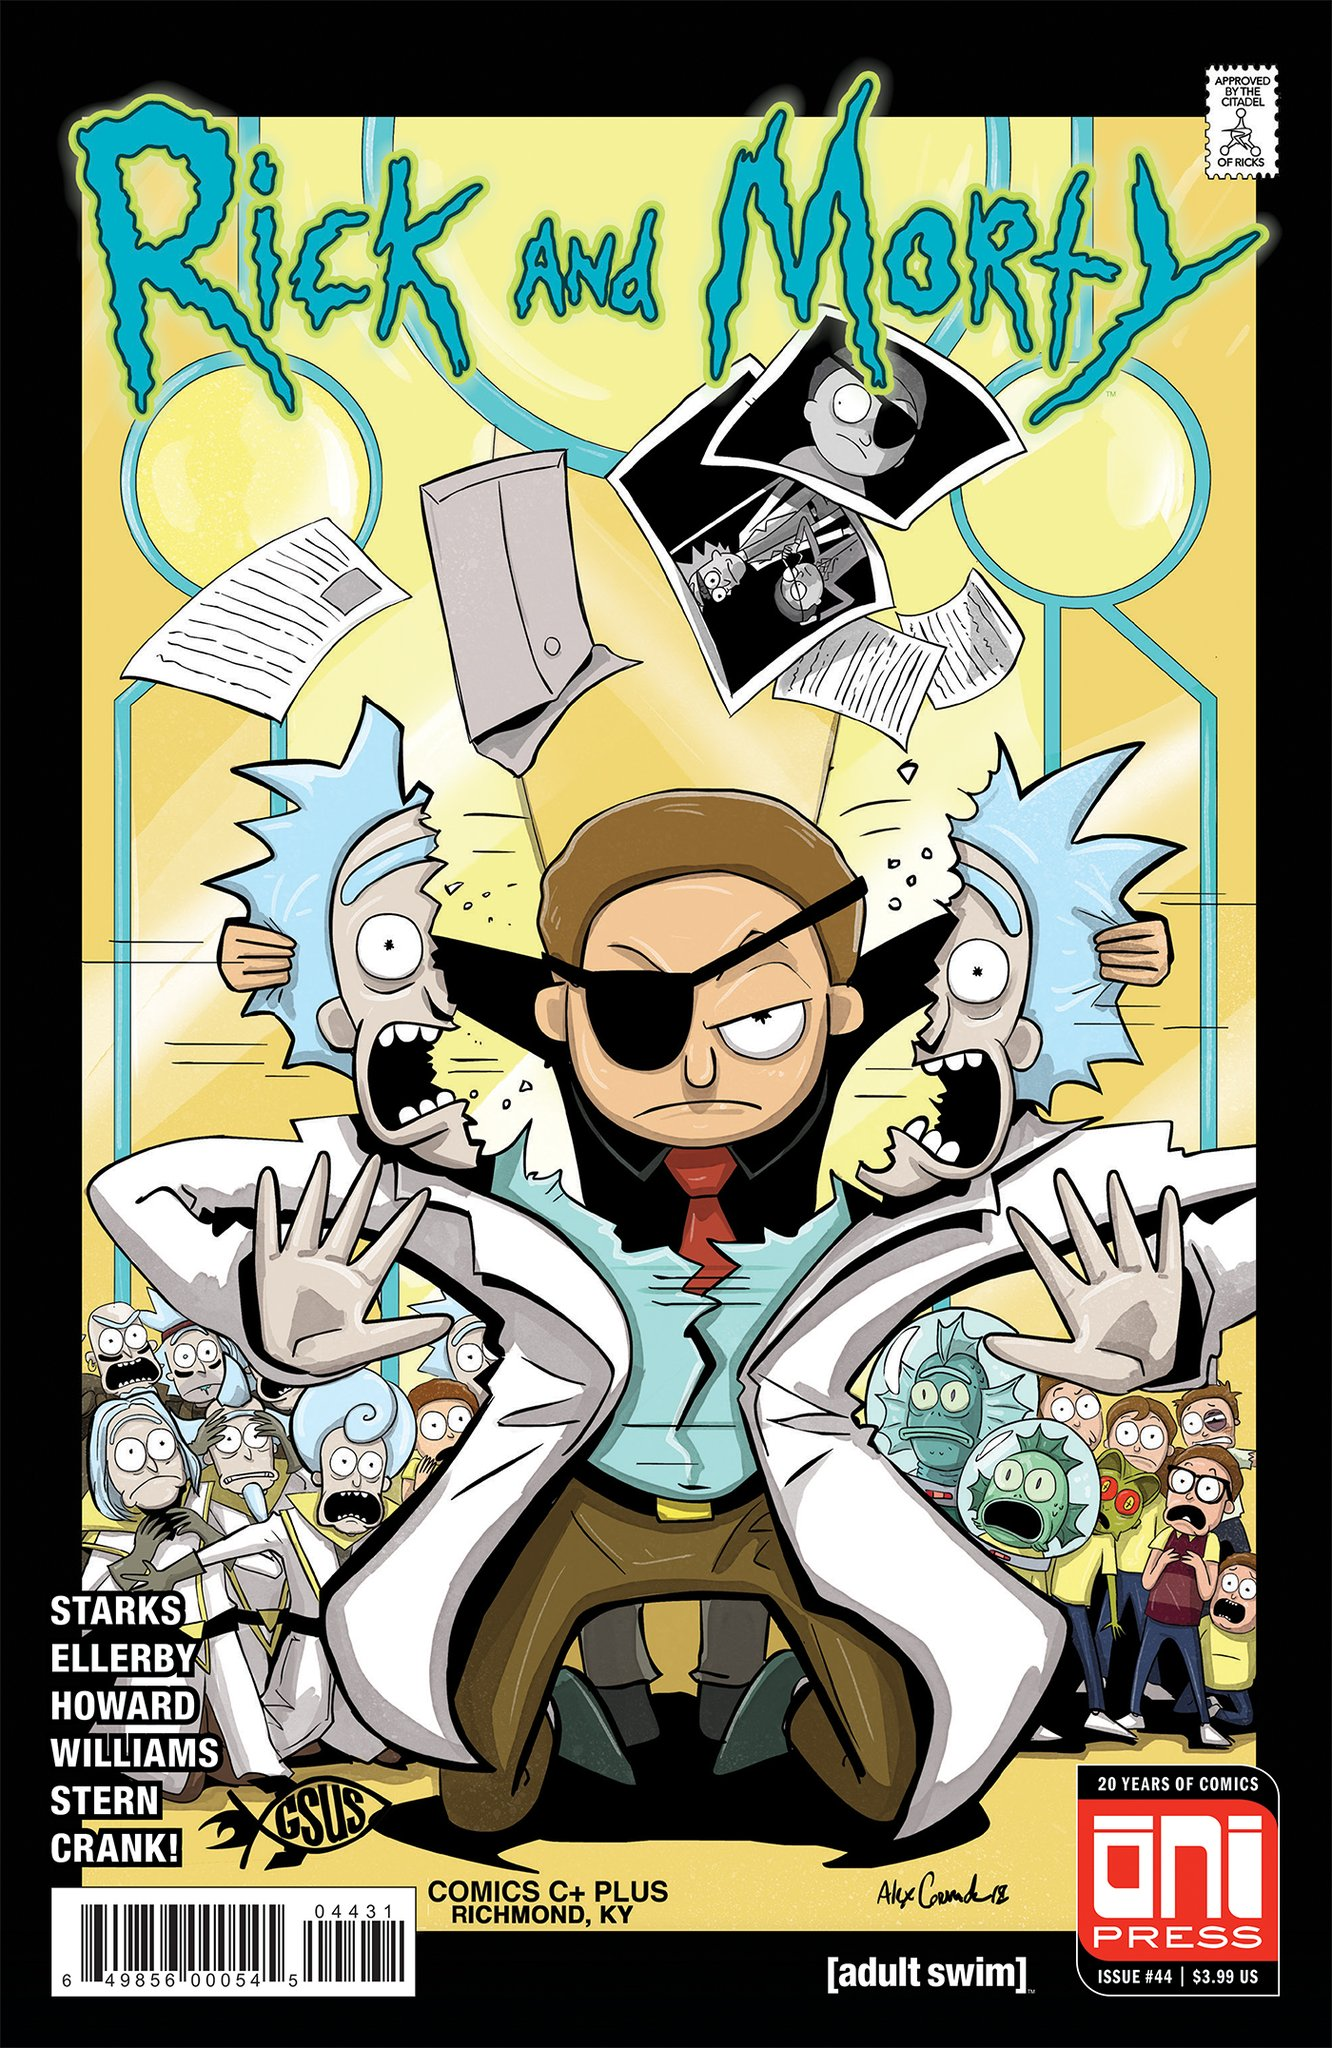 Rick and Morty Issue 44